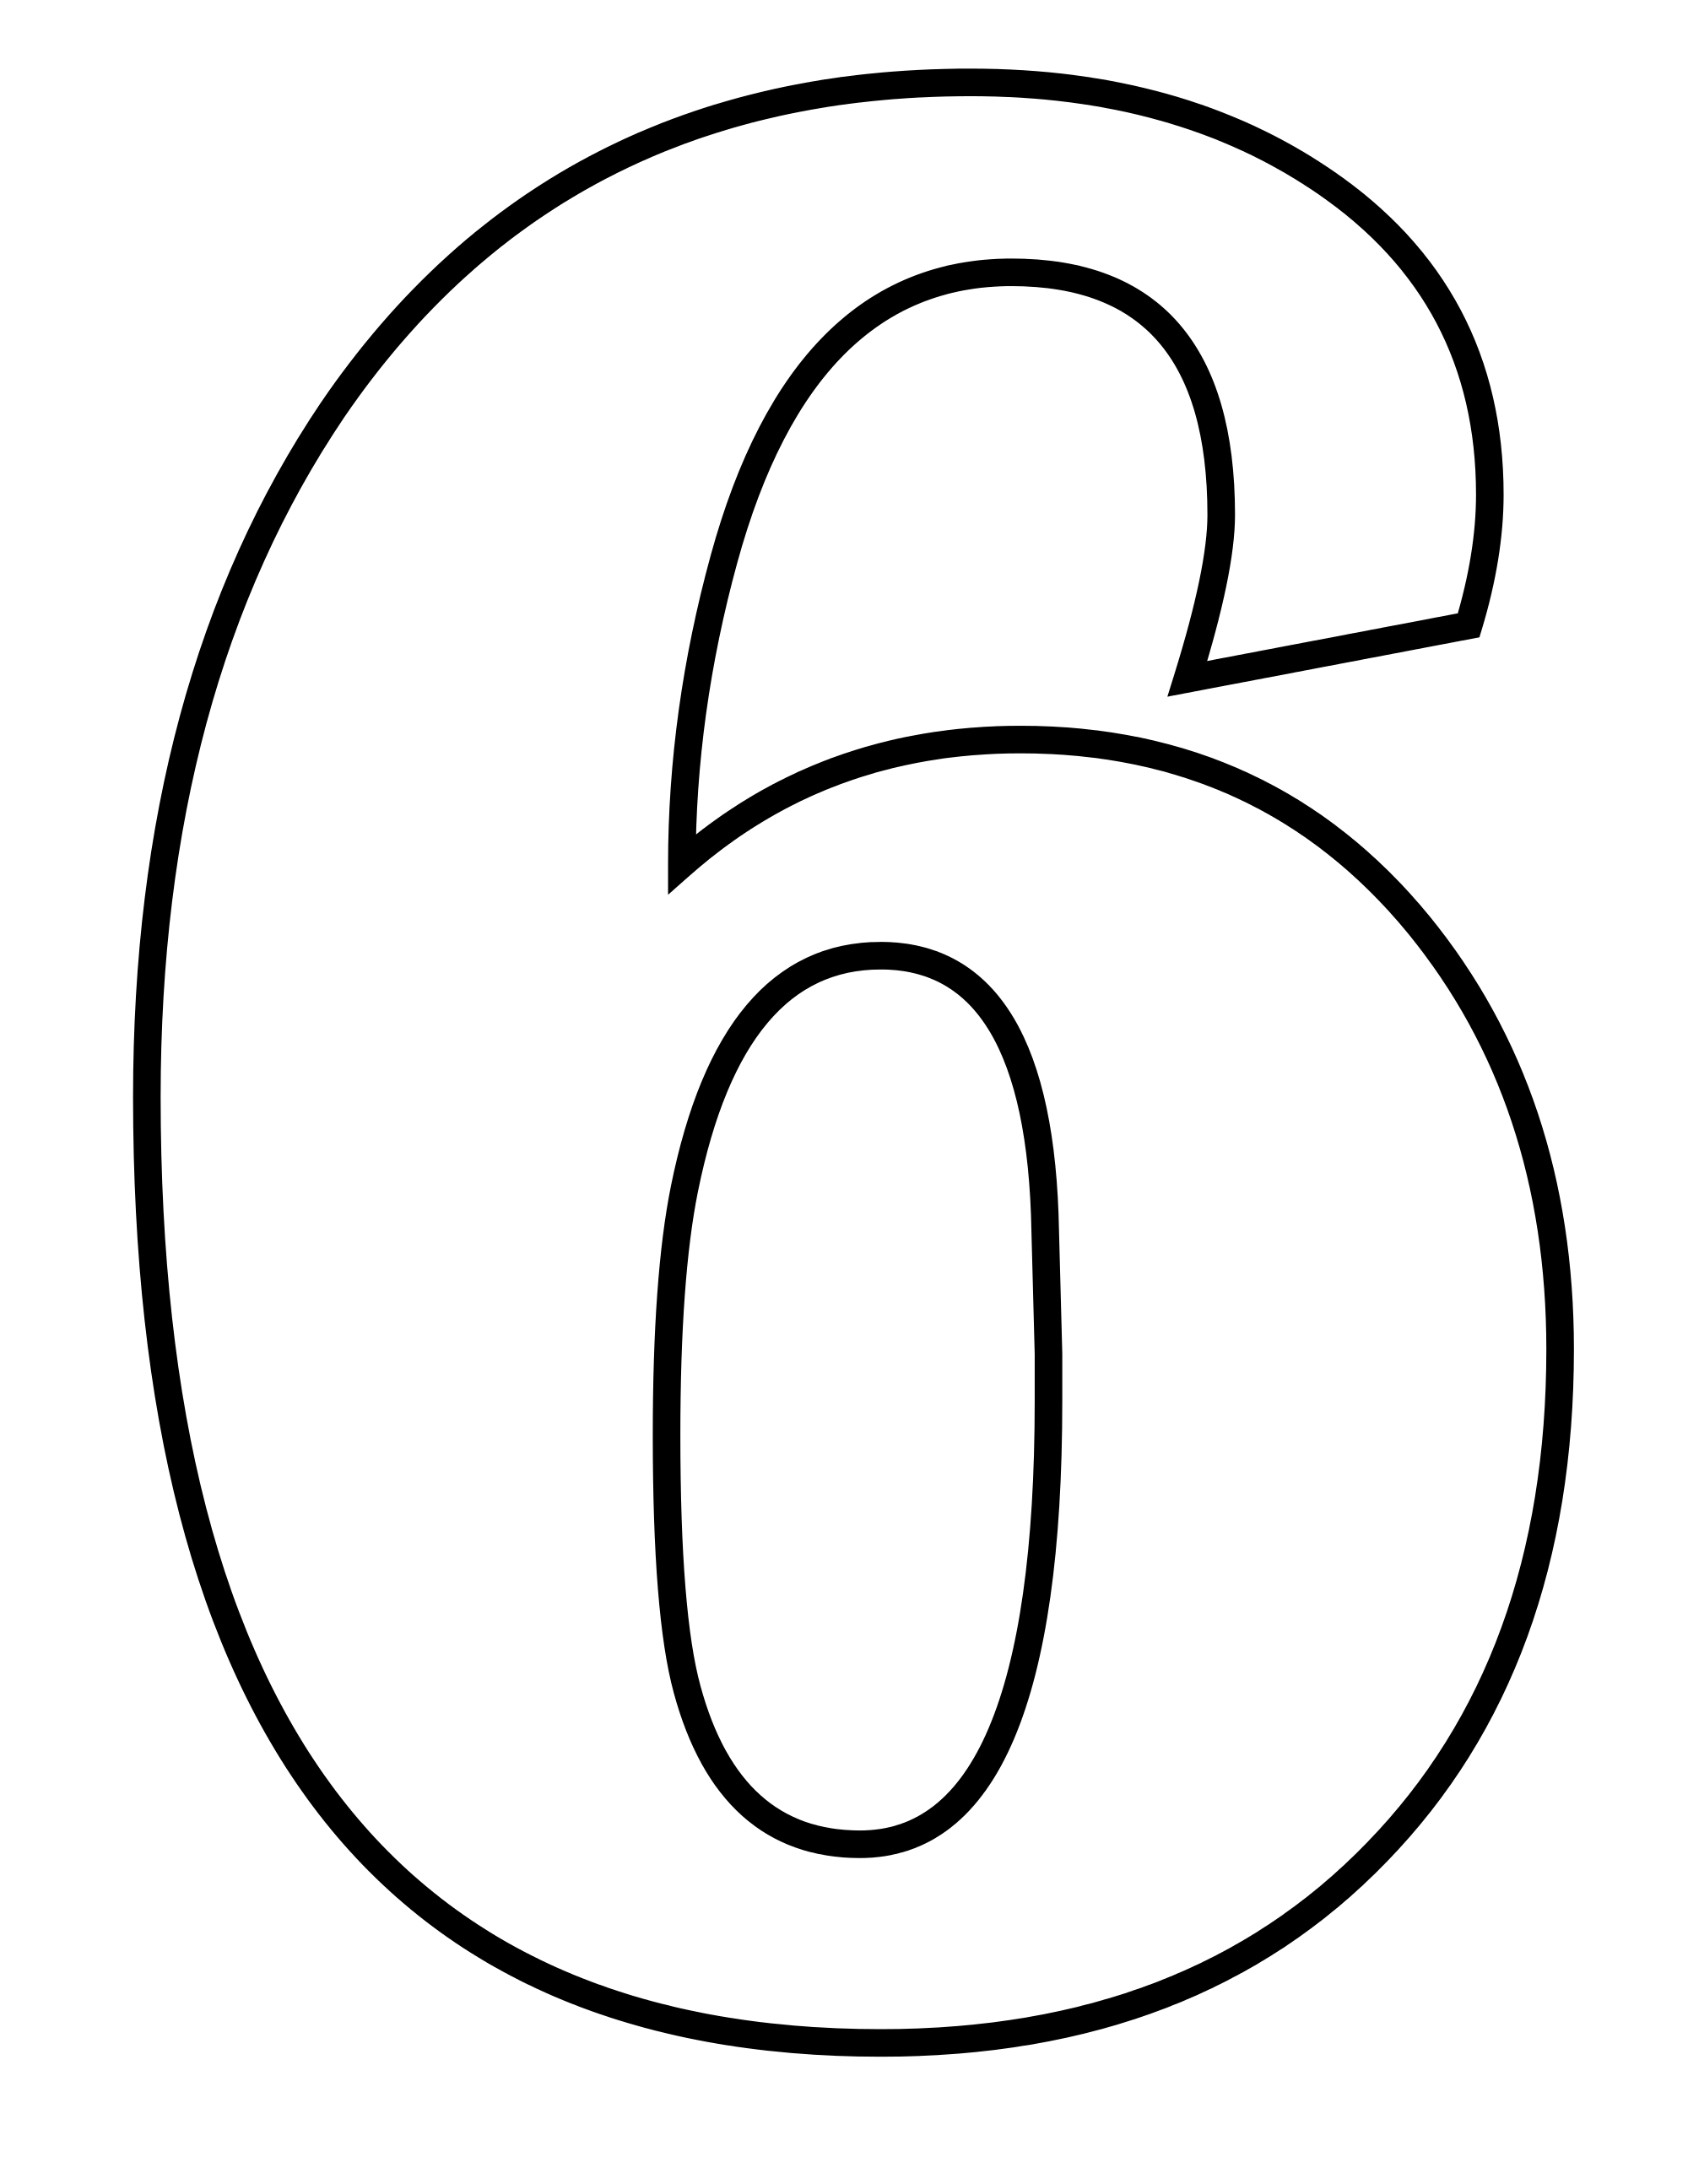 at getdrawings com. Numbers drawing easy clip black and white stock